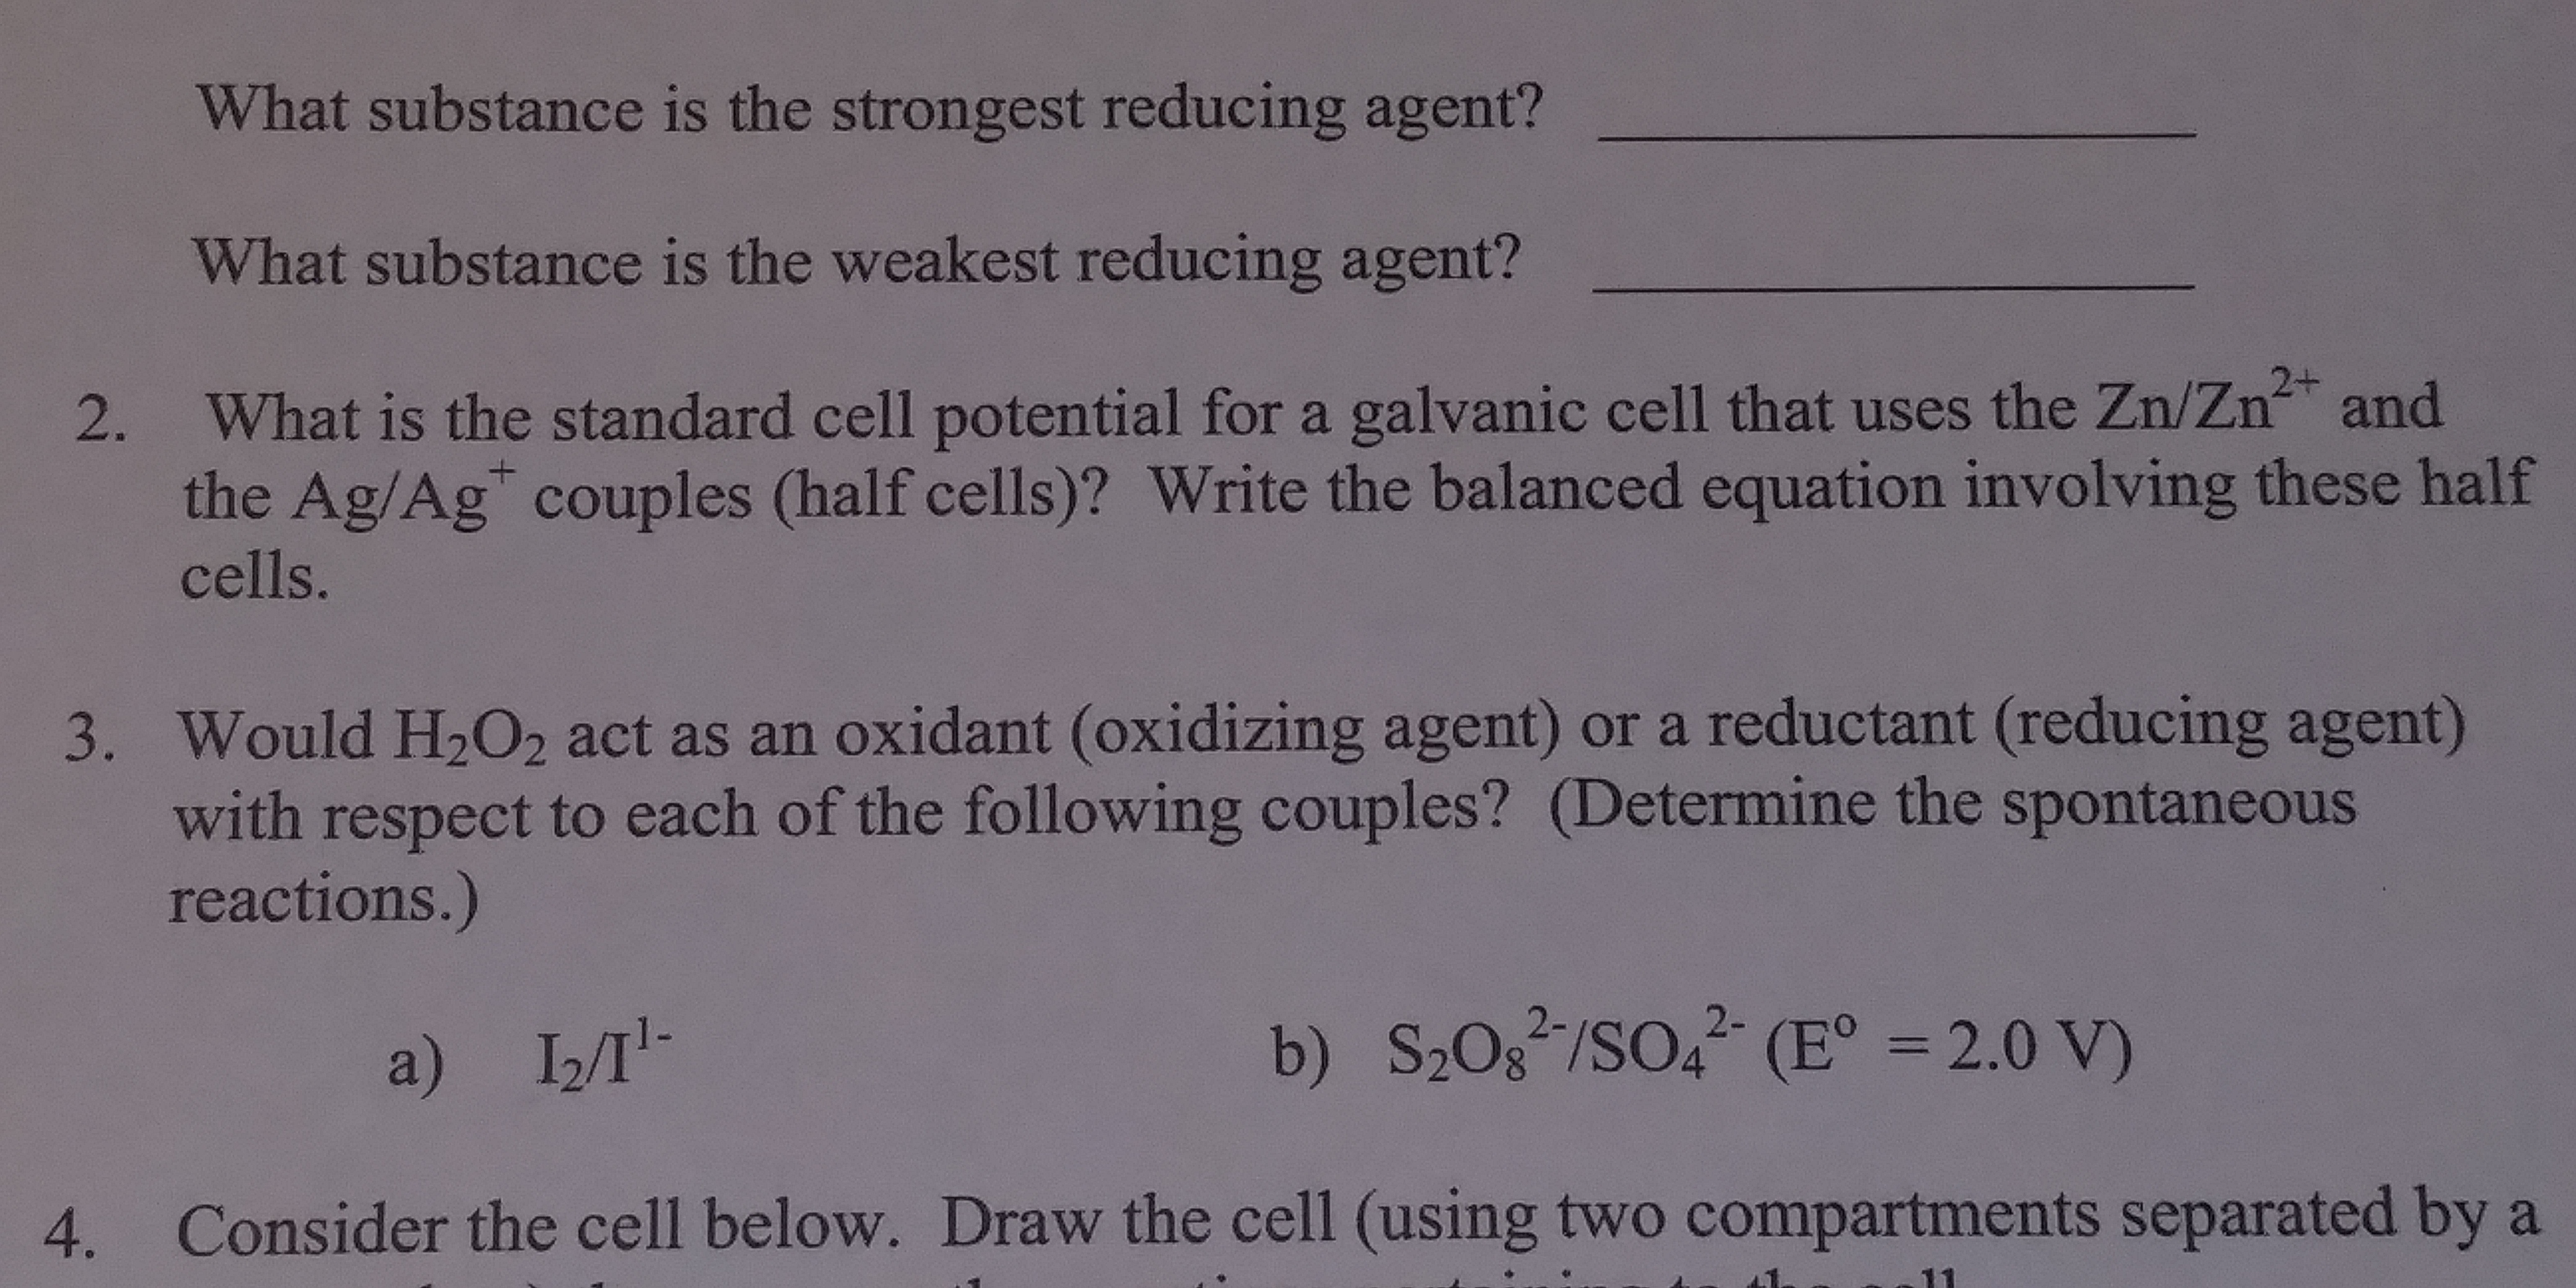 "What substance is the strongest reducing agent? What substance is the weakest reducing agent? What is the standard cell potential for a galvanic cell that uses the Zn/Zn2+ and the Ag/Ag"" couples (half cells)? Write the balanced equation involving these half cells. 2. 3. Would H202 act as an oxidant (oxidizing agent) or a reductant (reducing agent) with respect to each of the following couples? (Determine the spontaneous reactions.) a) I2T 4. Consider the cell below. Draw the cell (using two compartments separated by a"